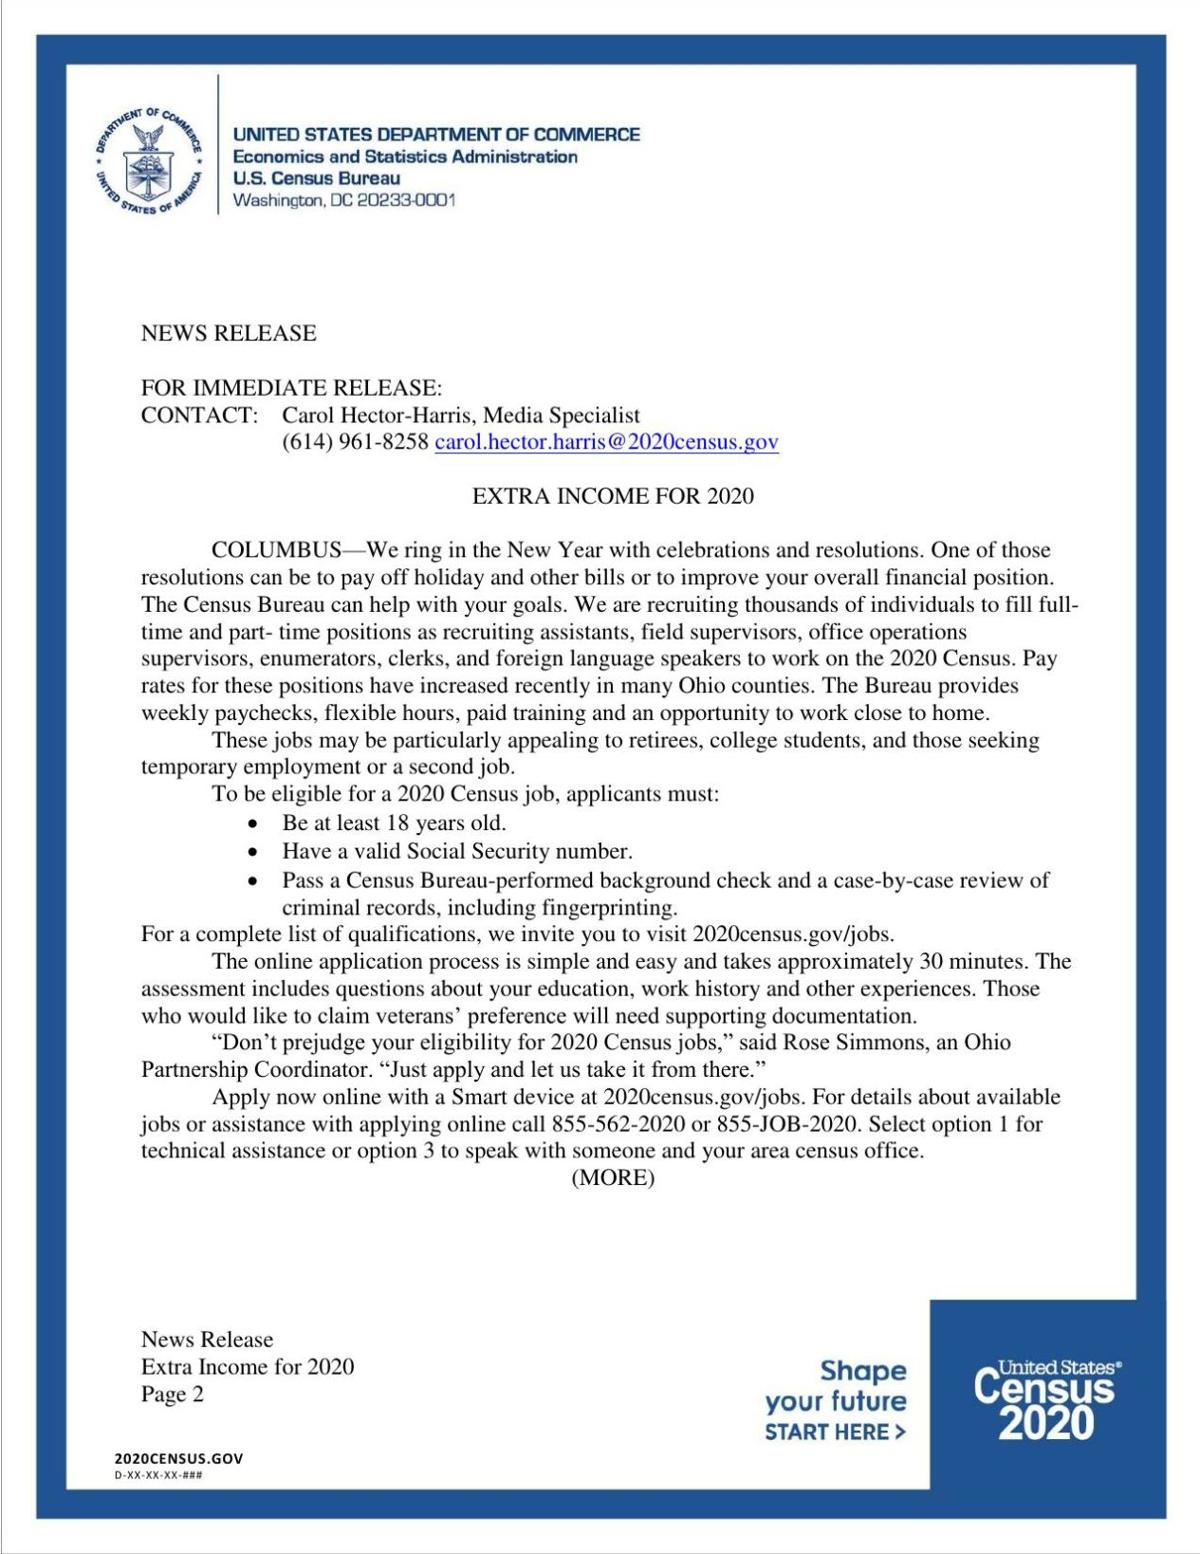 News Release, Extra income for 2020.pdf